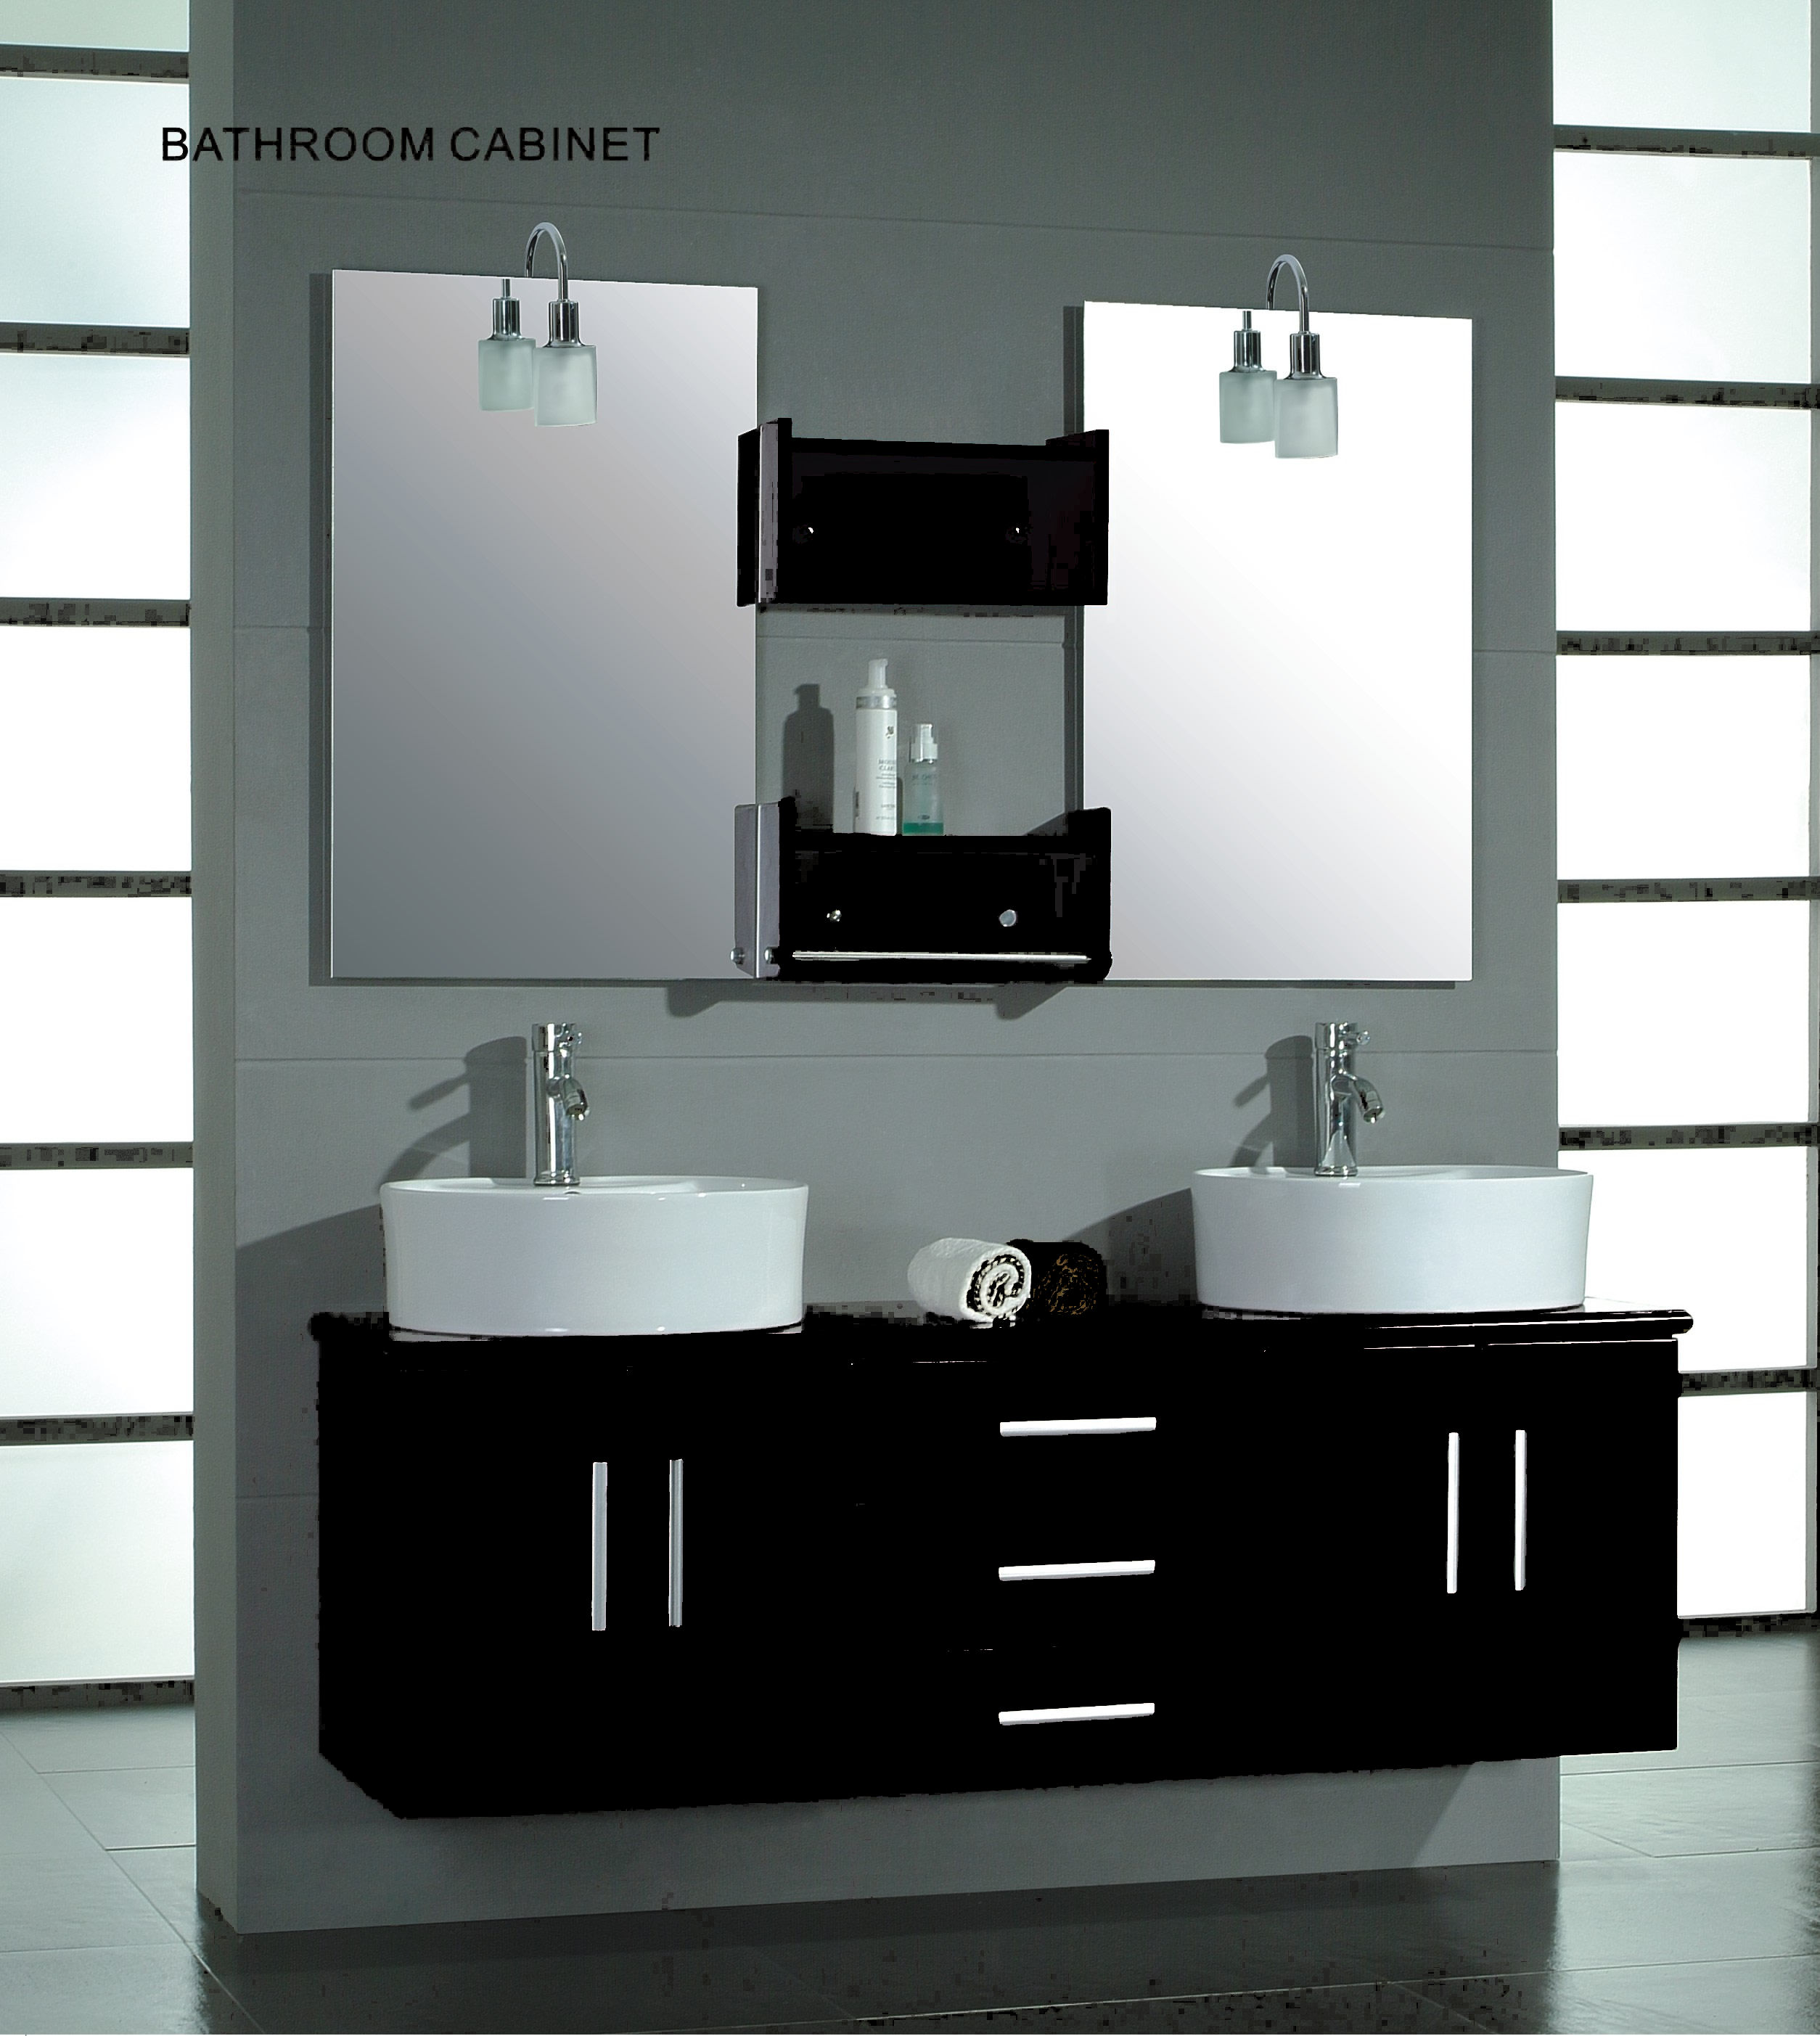 idea wall ideas bathroom best vanity remarkable ikea cabinets of luxury inch mount remodel design beautiful cabinet